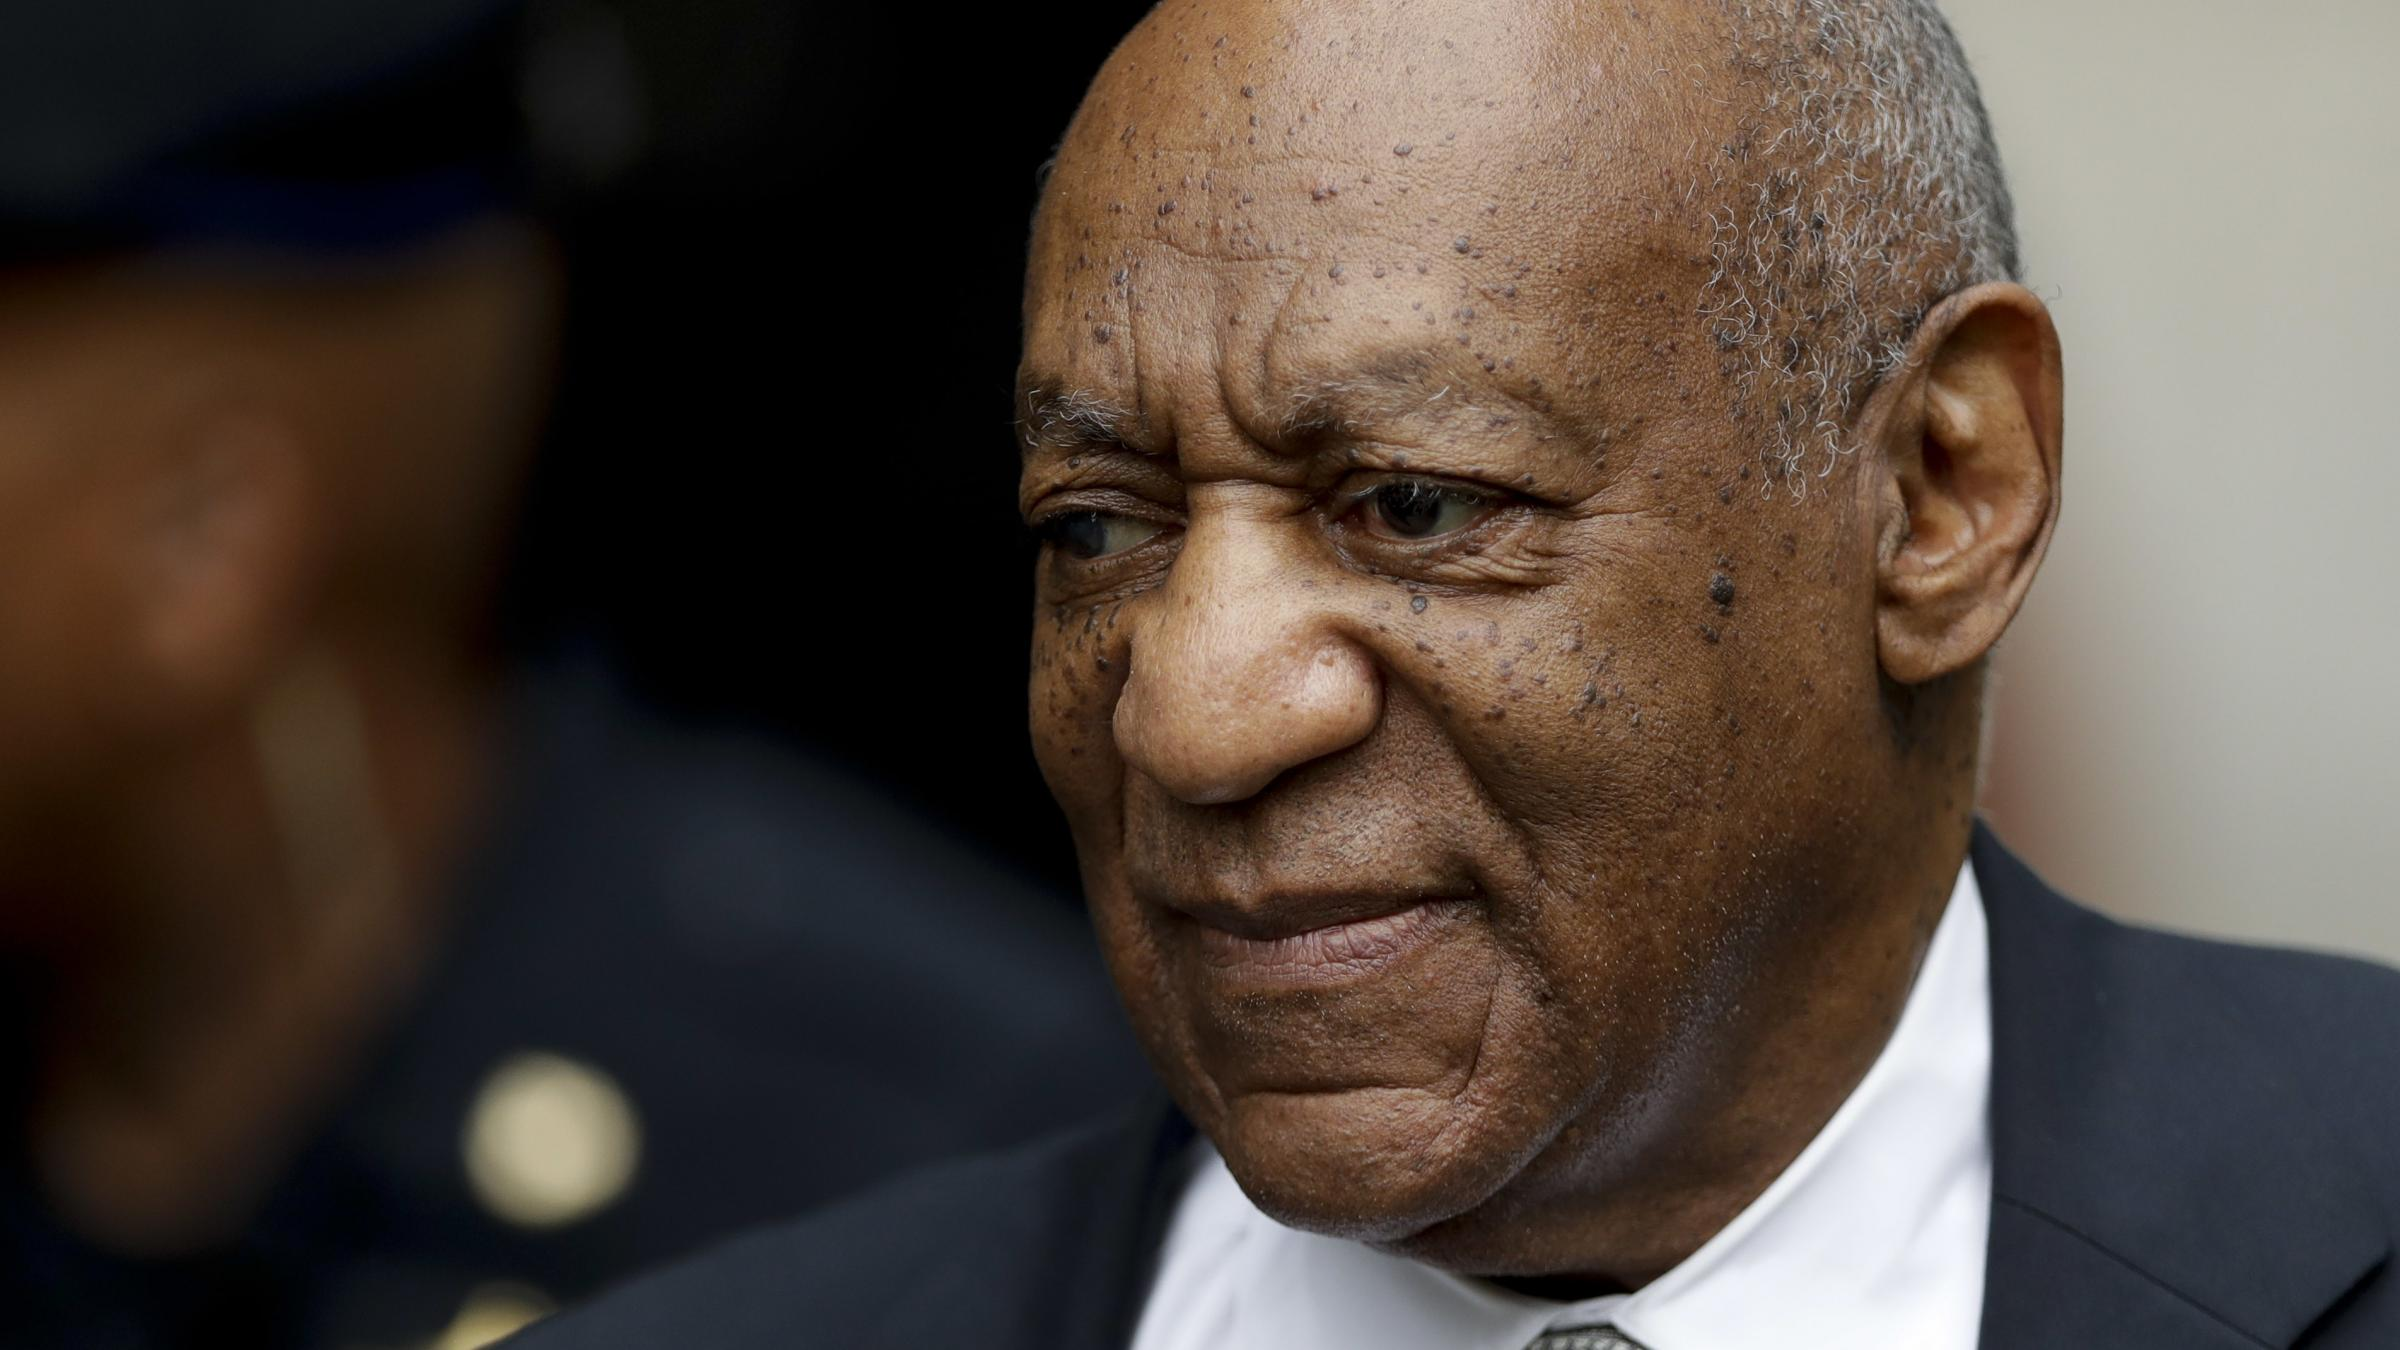 Mistrial declared in Bill Cosby trial as jury deadlocked